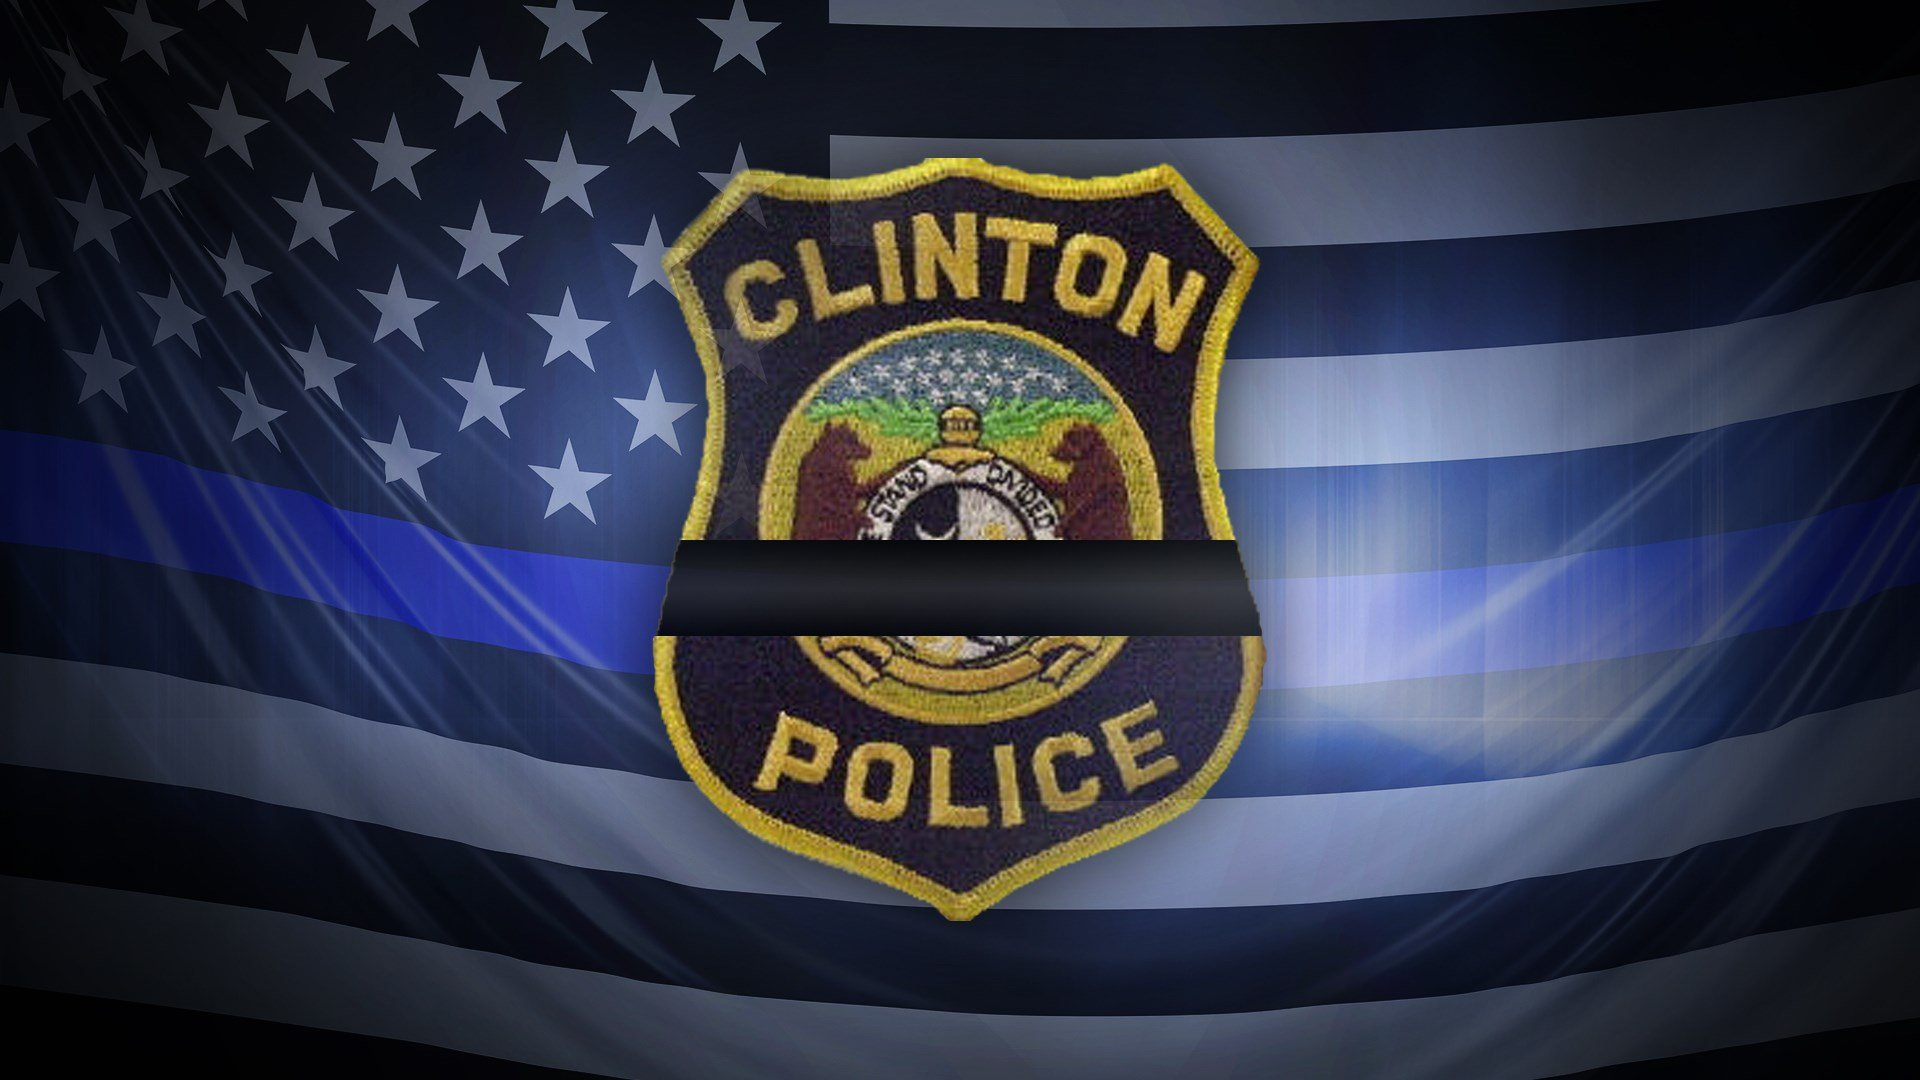 The small Missouri town of Clinton is mourning the loss of one of their police officers shot and killed in the line of duty. (KCTV5)